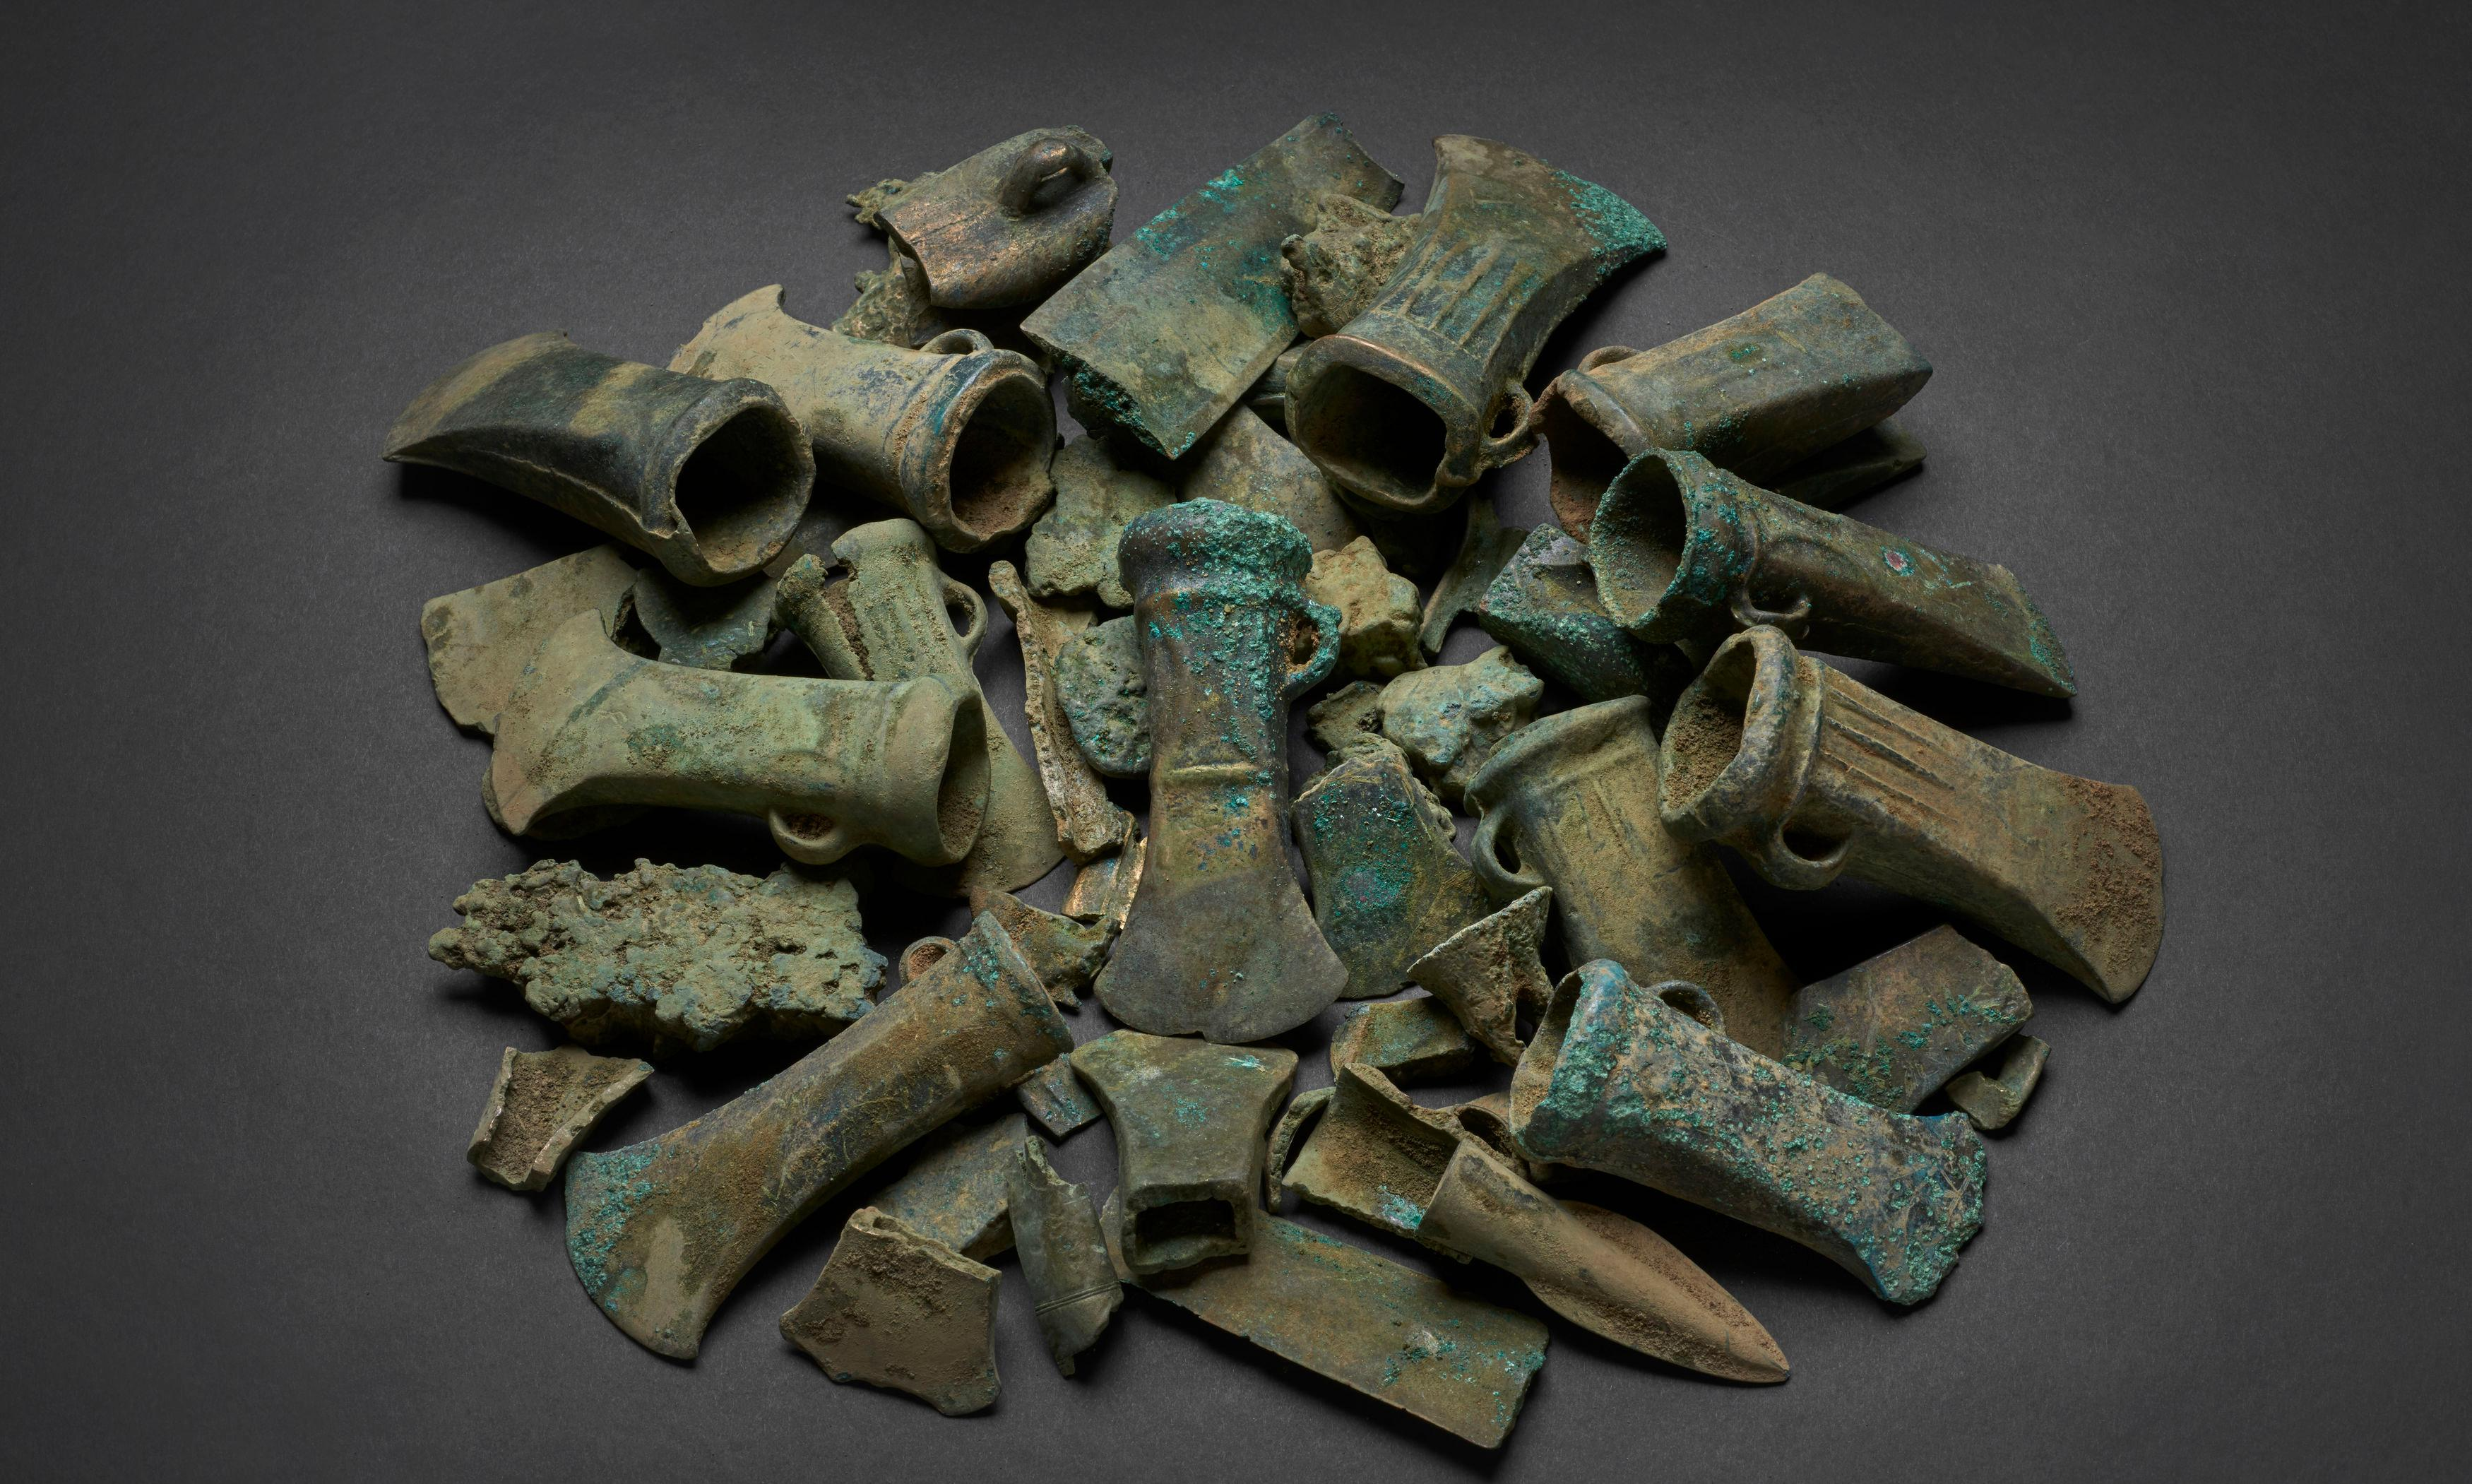 'Havering hoard' of bronze age objects to go on show in London